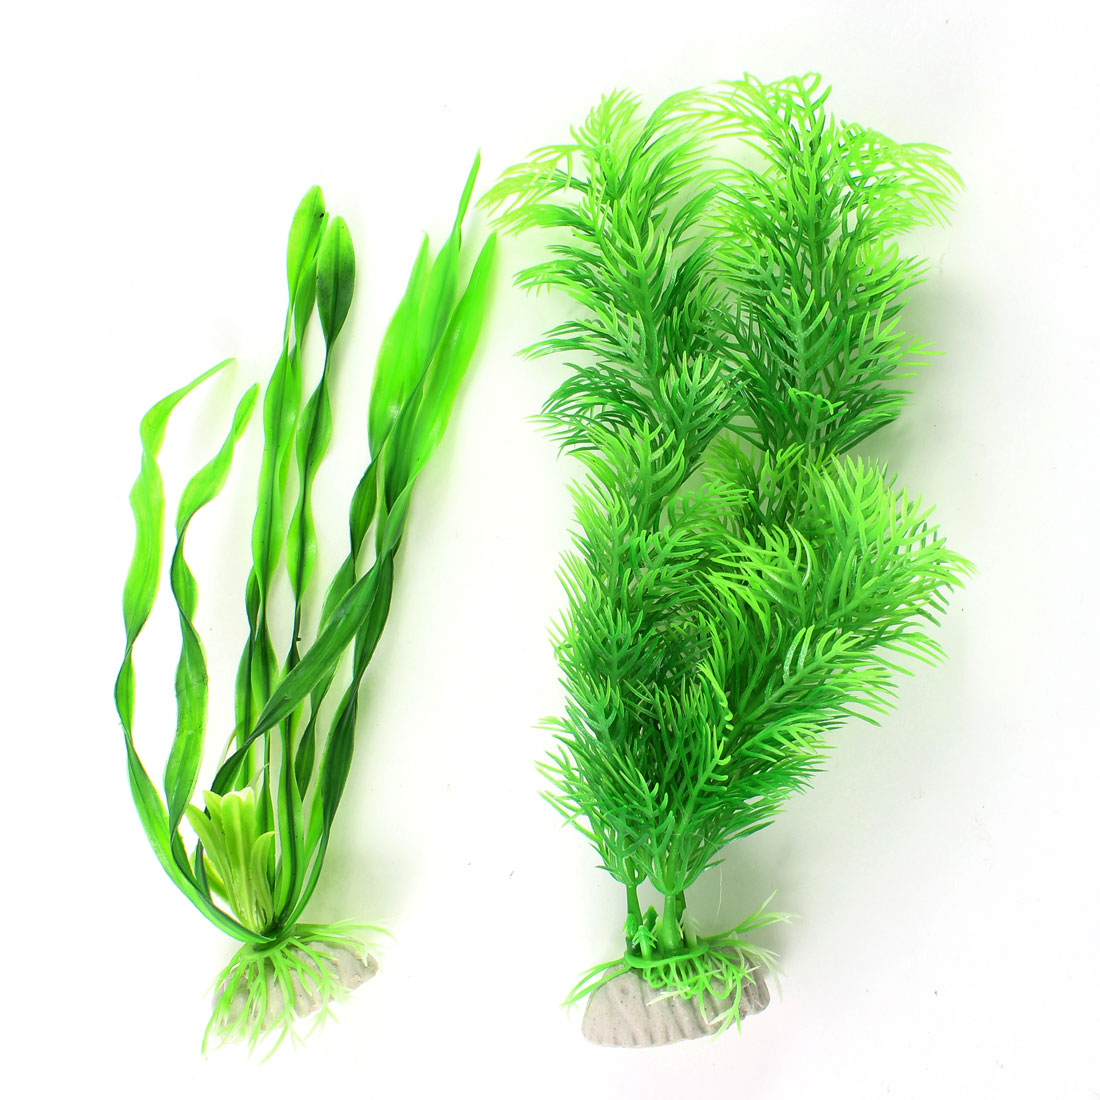 2 Pcs Landscaping Emulational Water Grasses Plants Green for Fish Tank